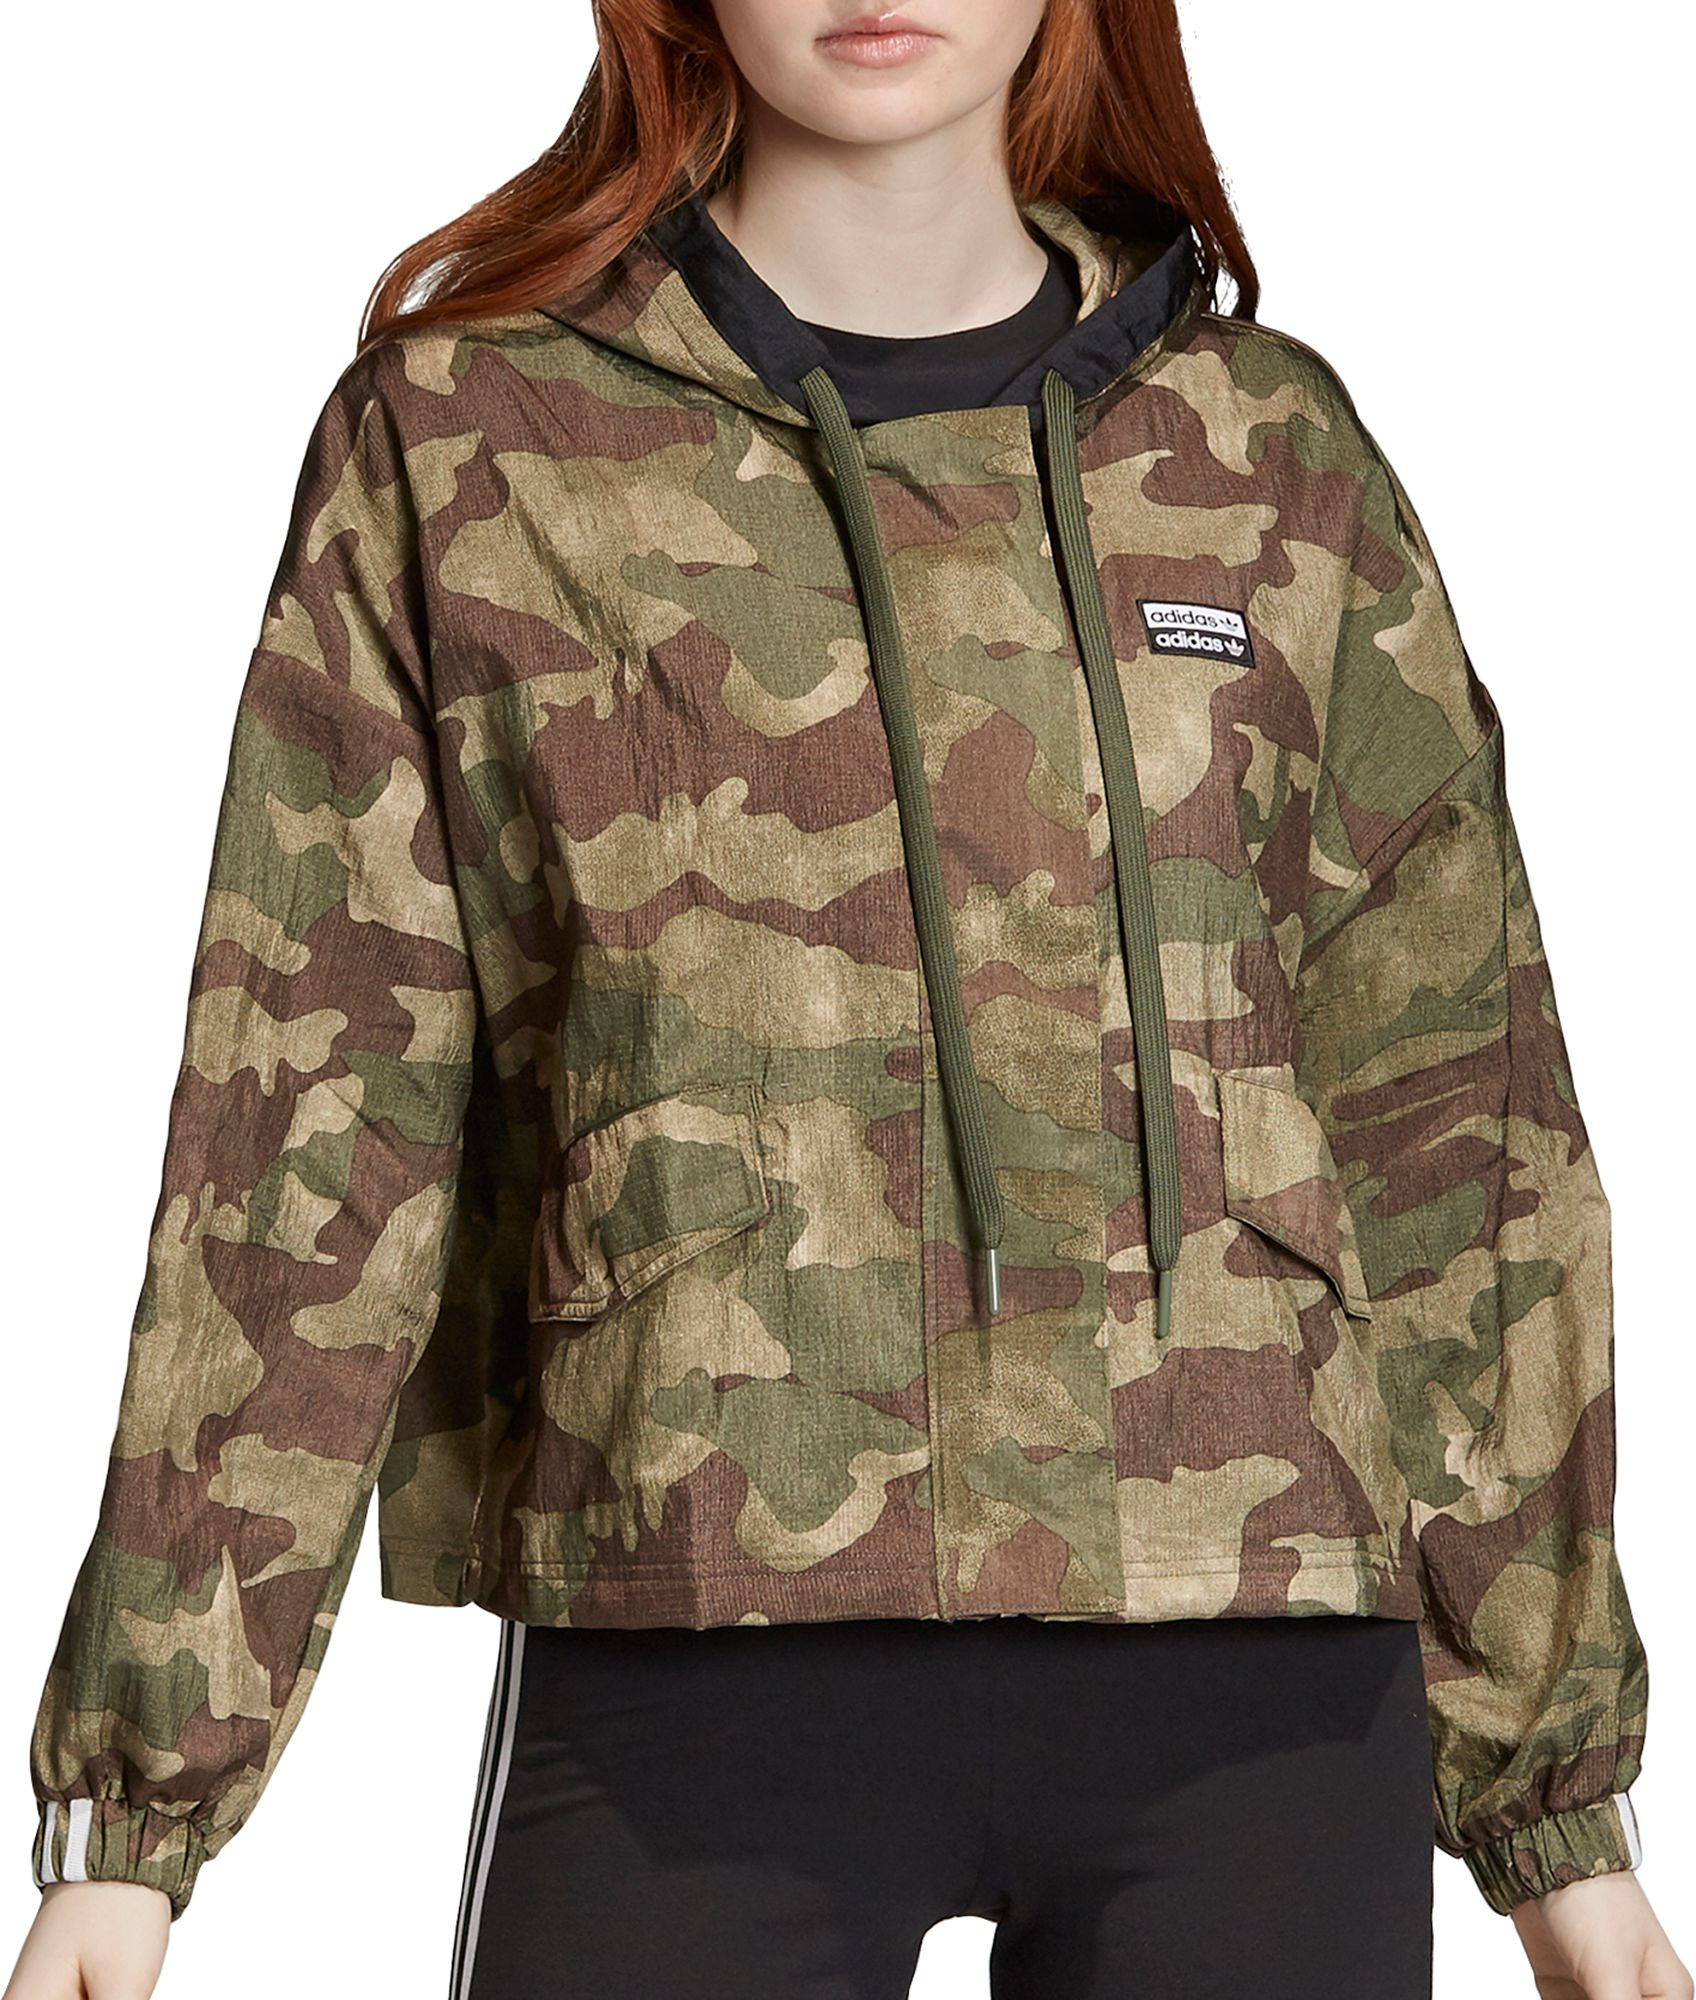 adidas Originals Women's Vocal Camo Windbreaker Jacket, Small, Green